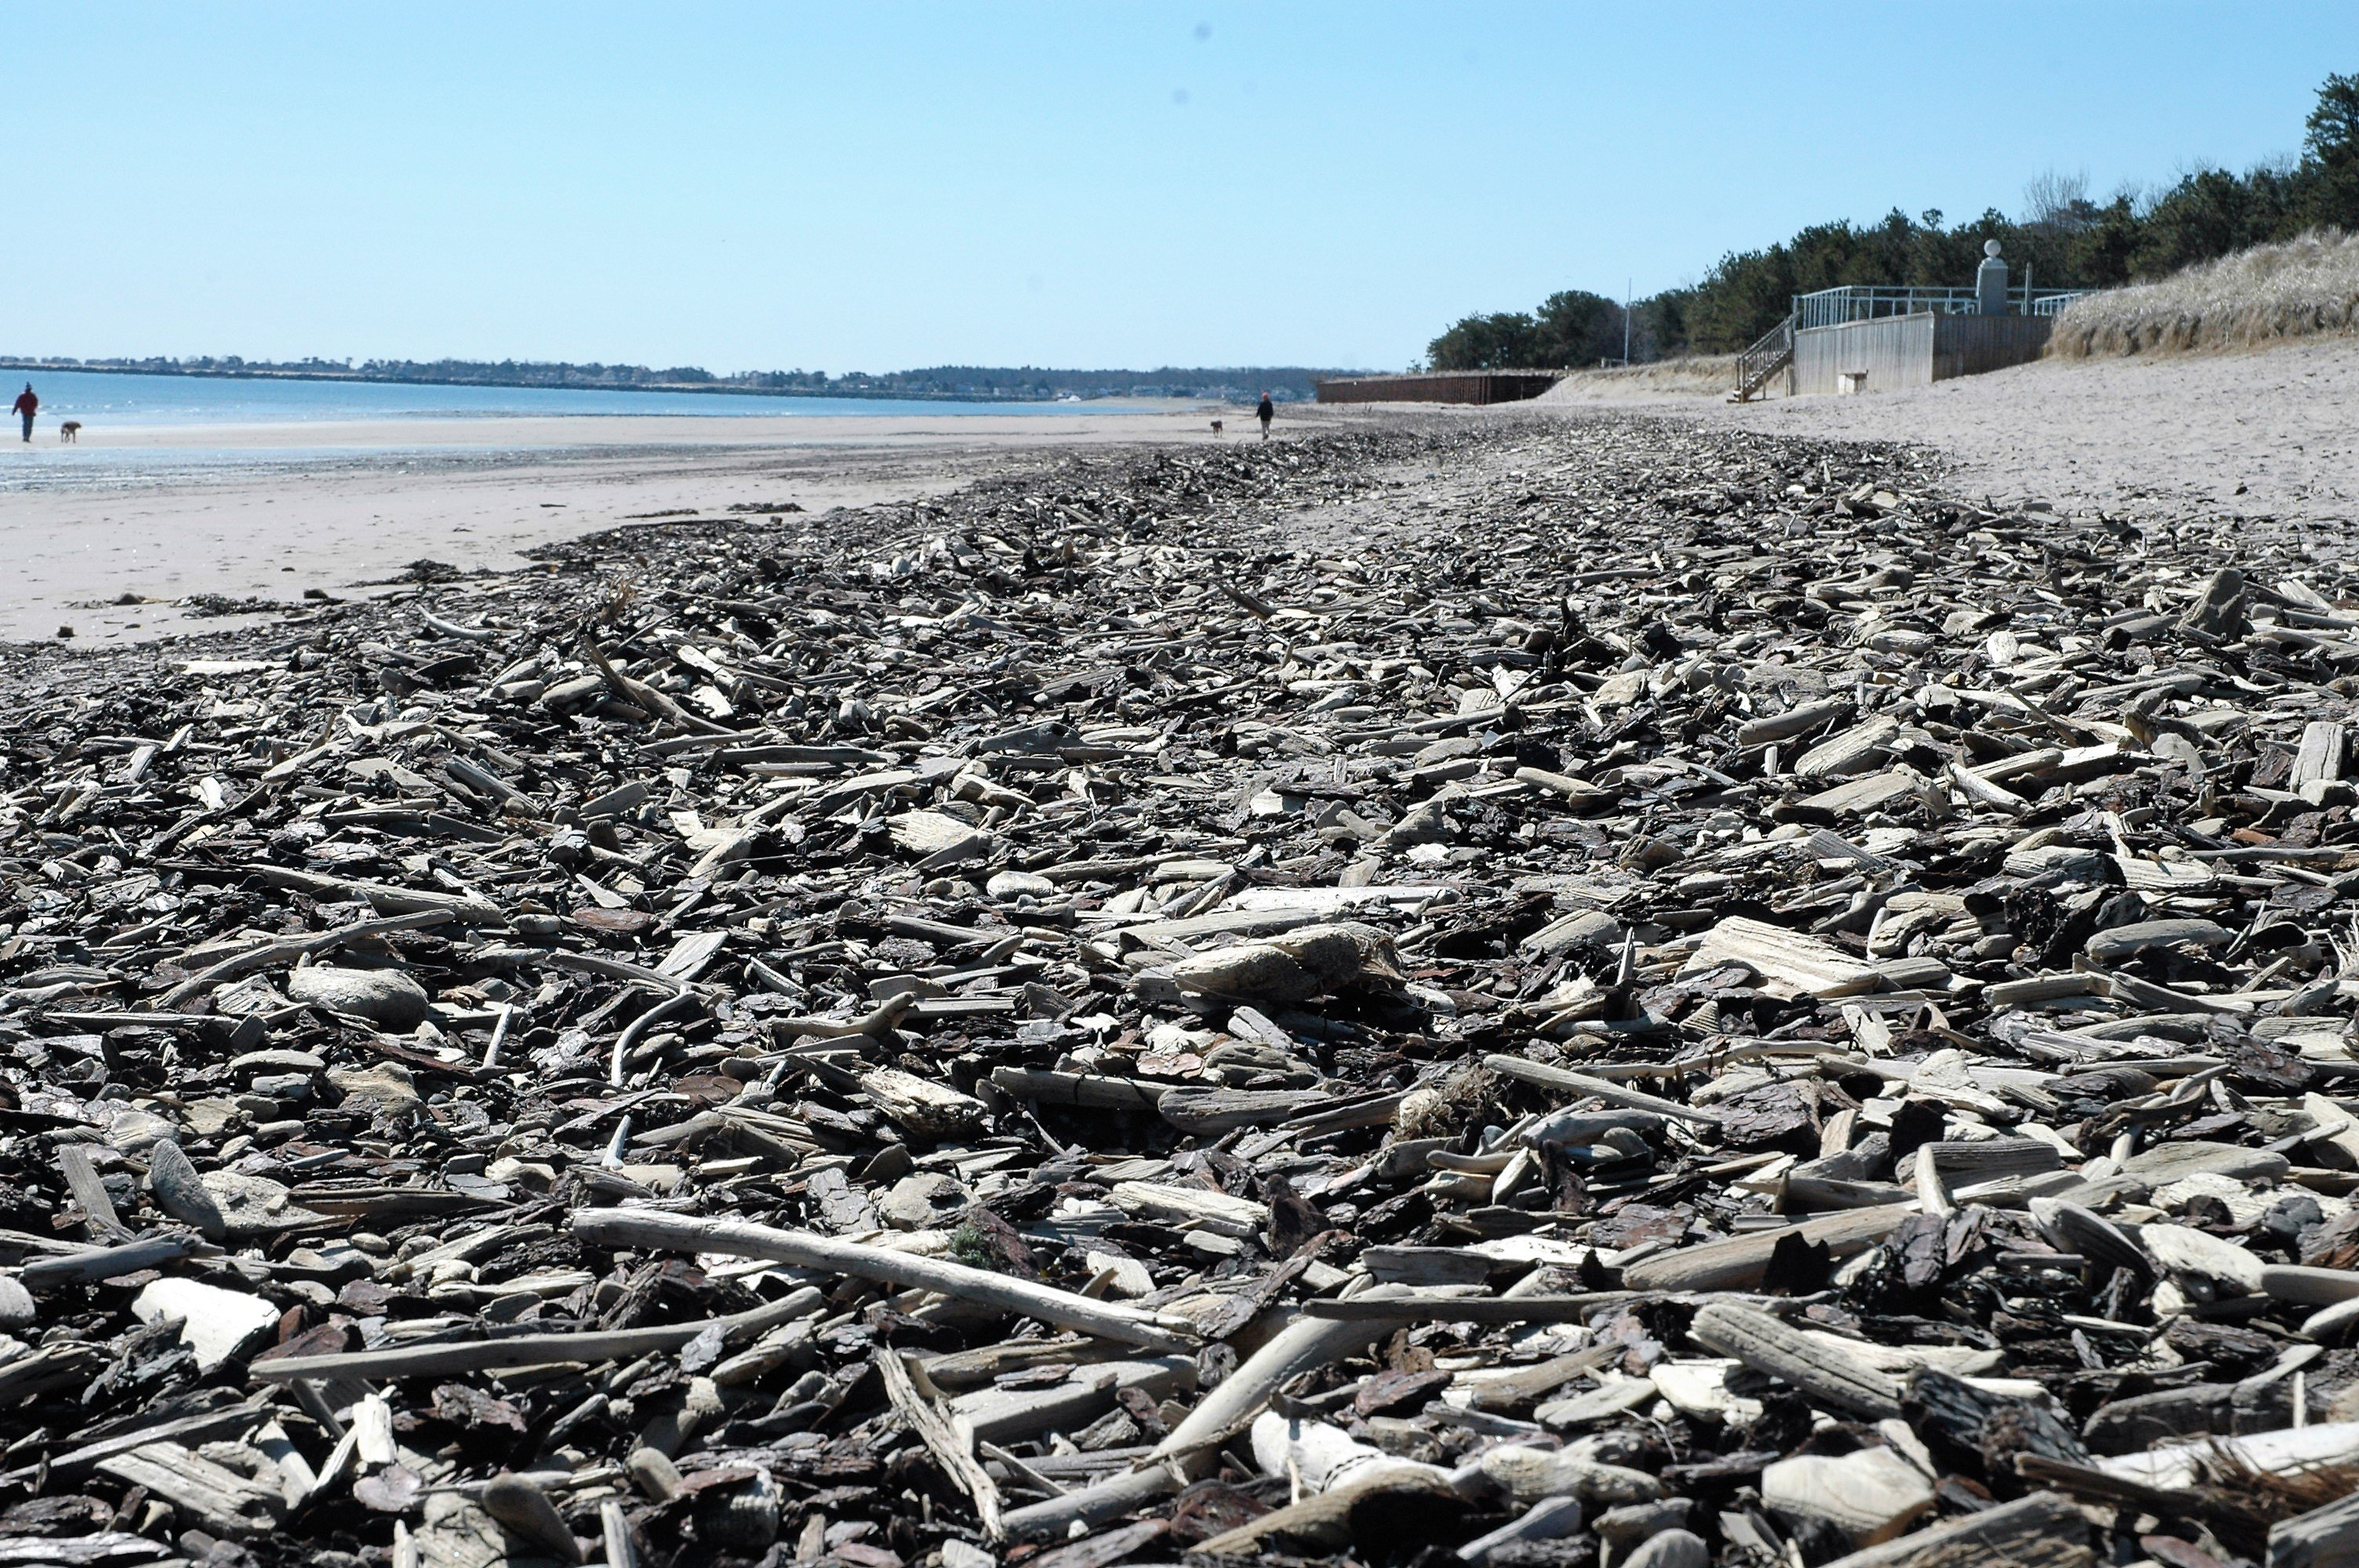 Beach replenishment brings driftwood with it to Saco